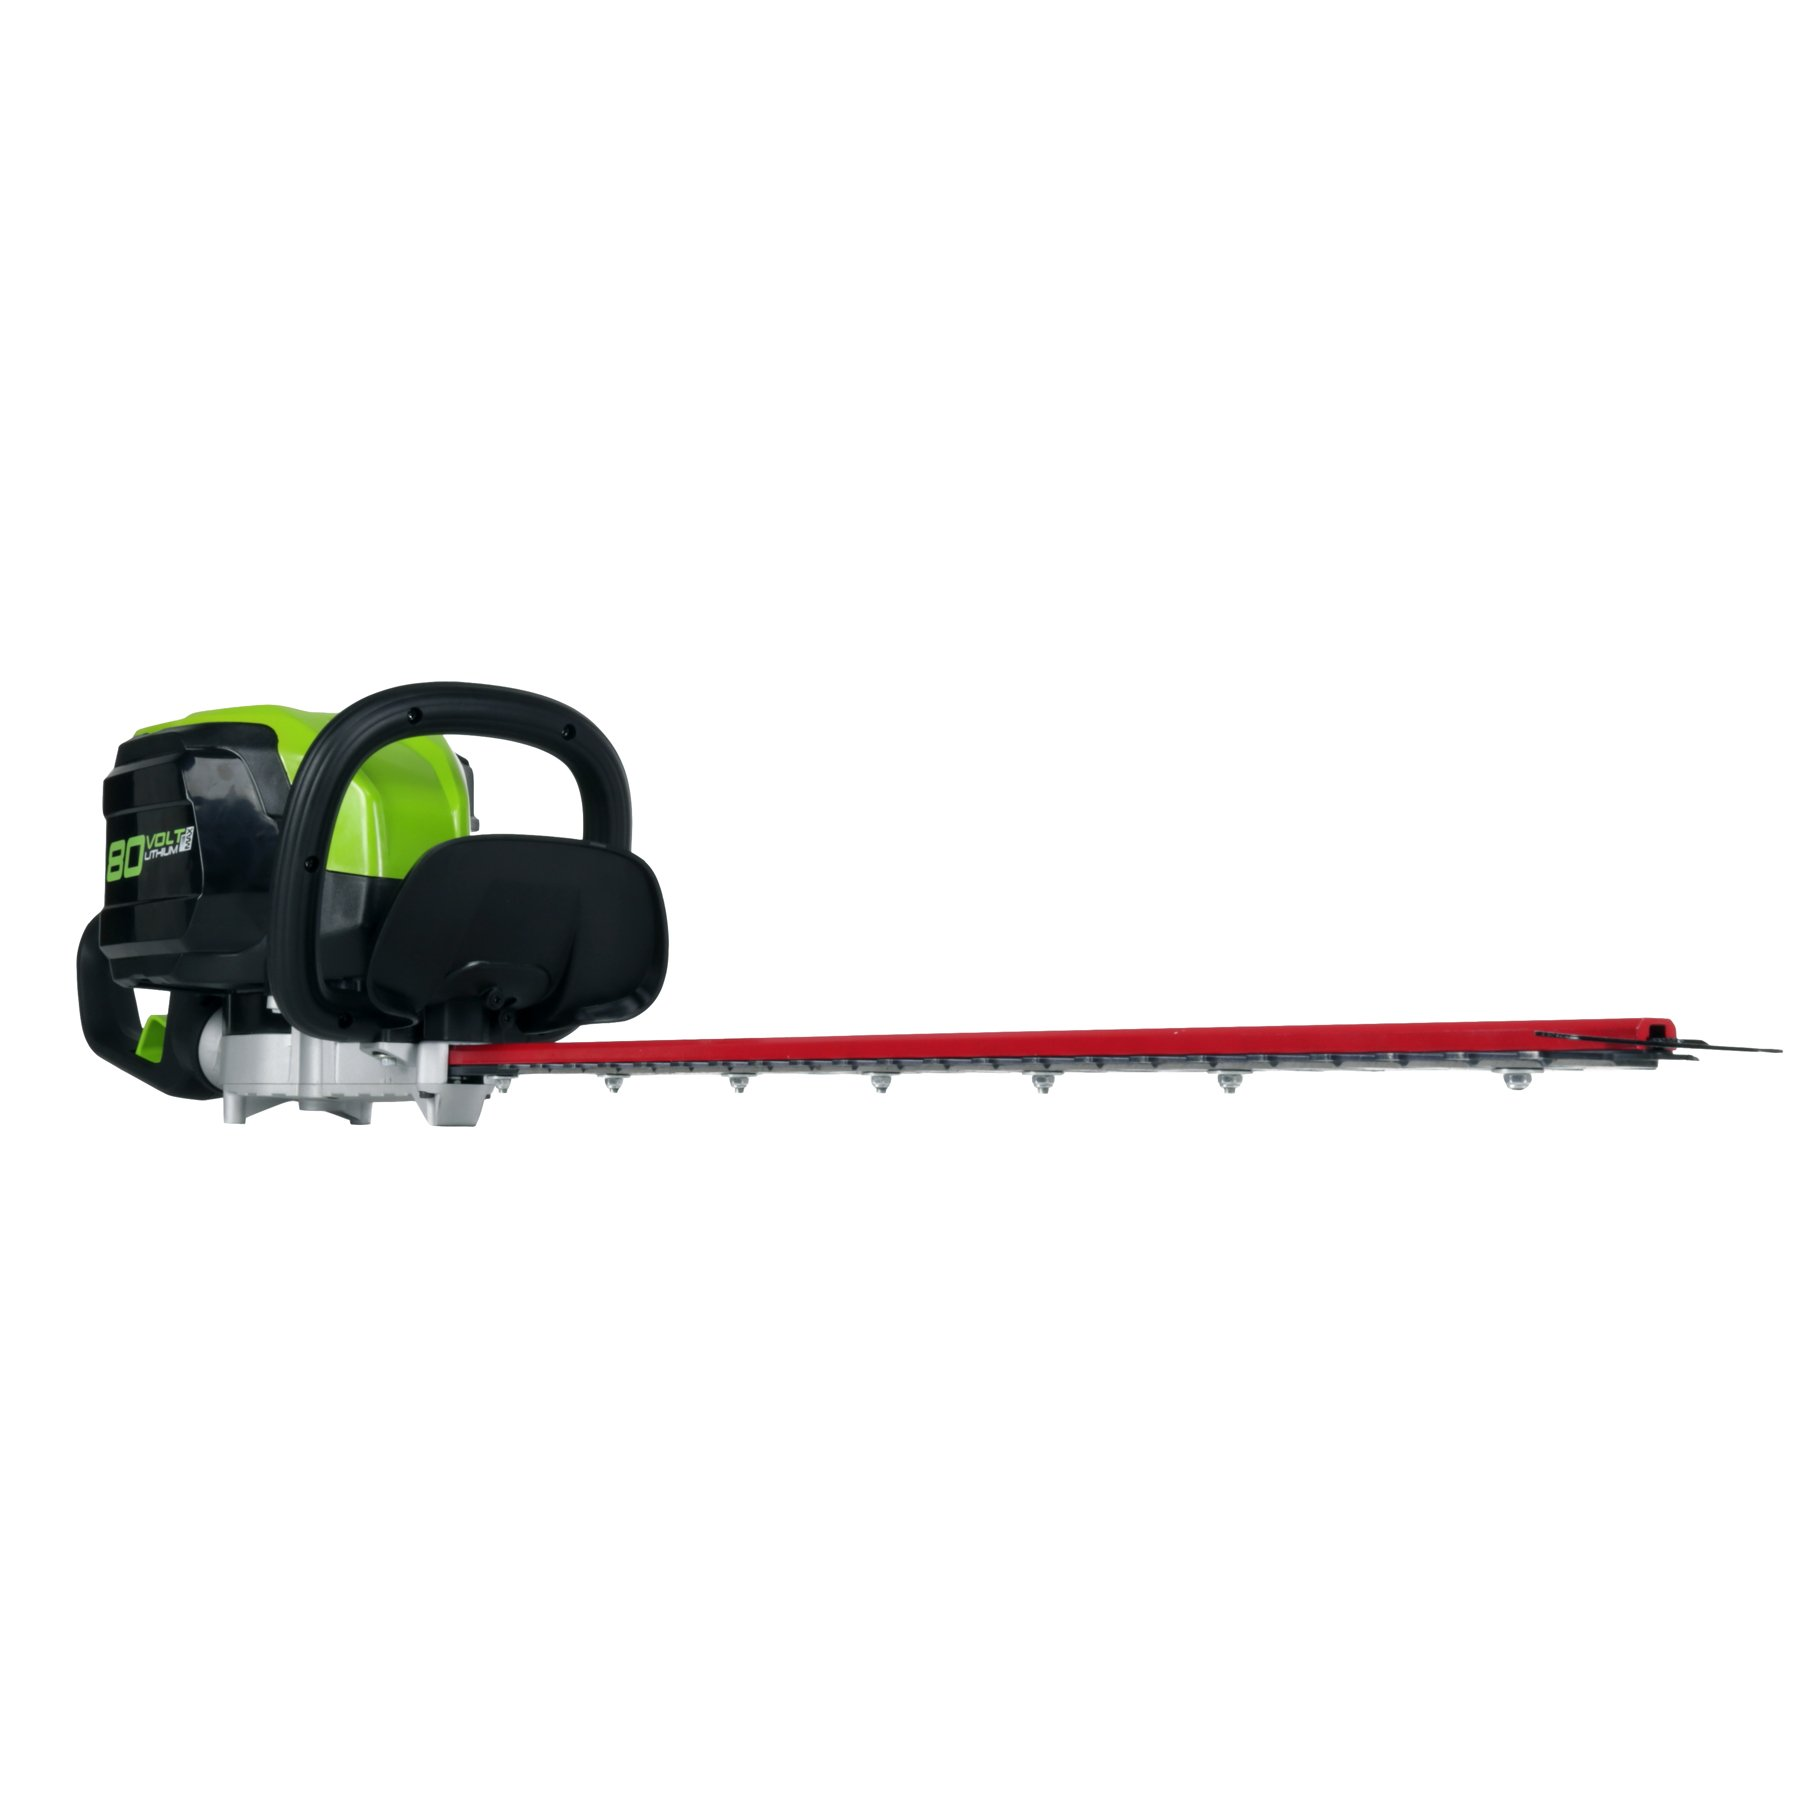 Greenworks PRO 26-Inch 80V Cordless Hedge Trimmer, Battery Not Included GHT80320